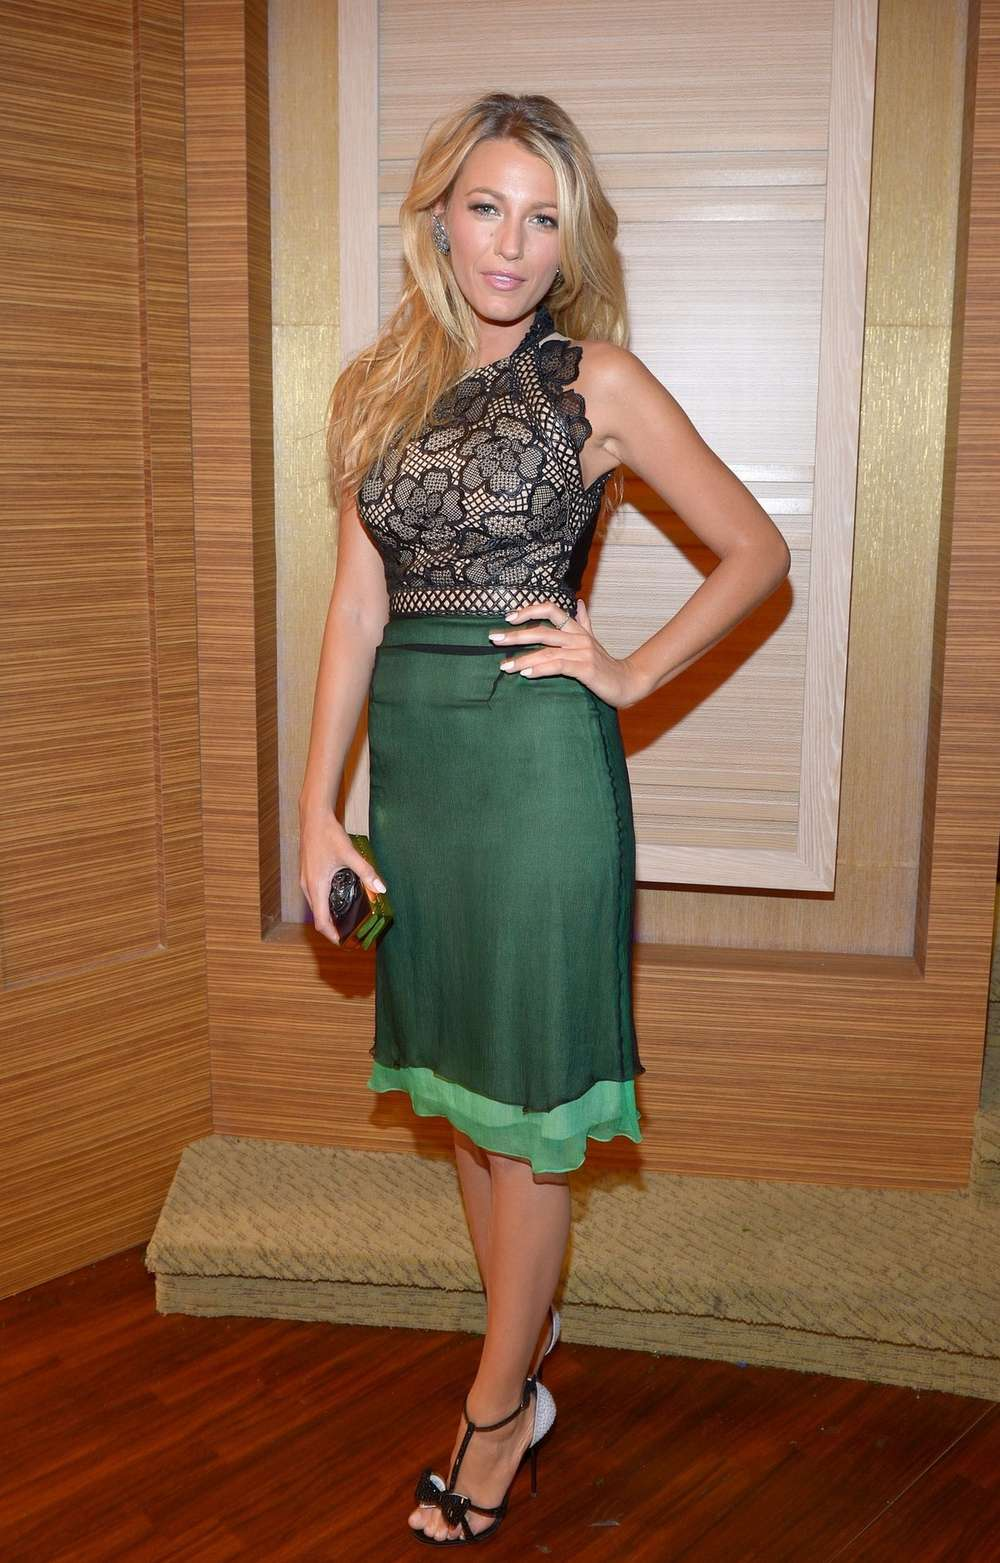 Blake Lively 2012 : Blake Lively in a tight skirt-03